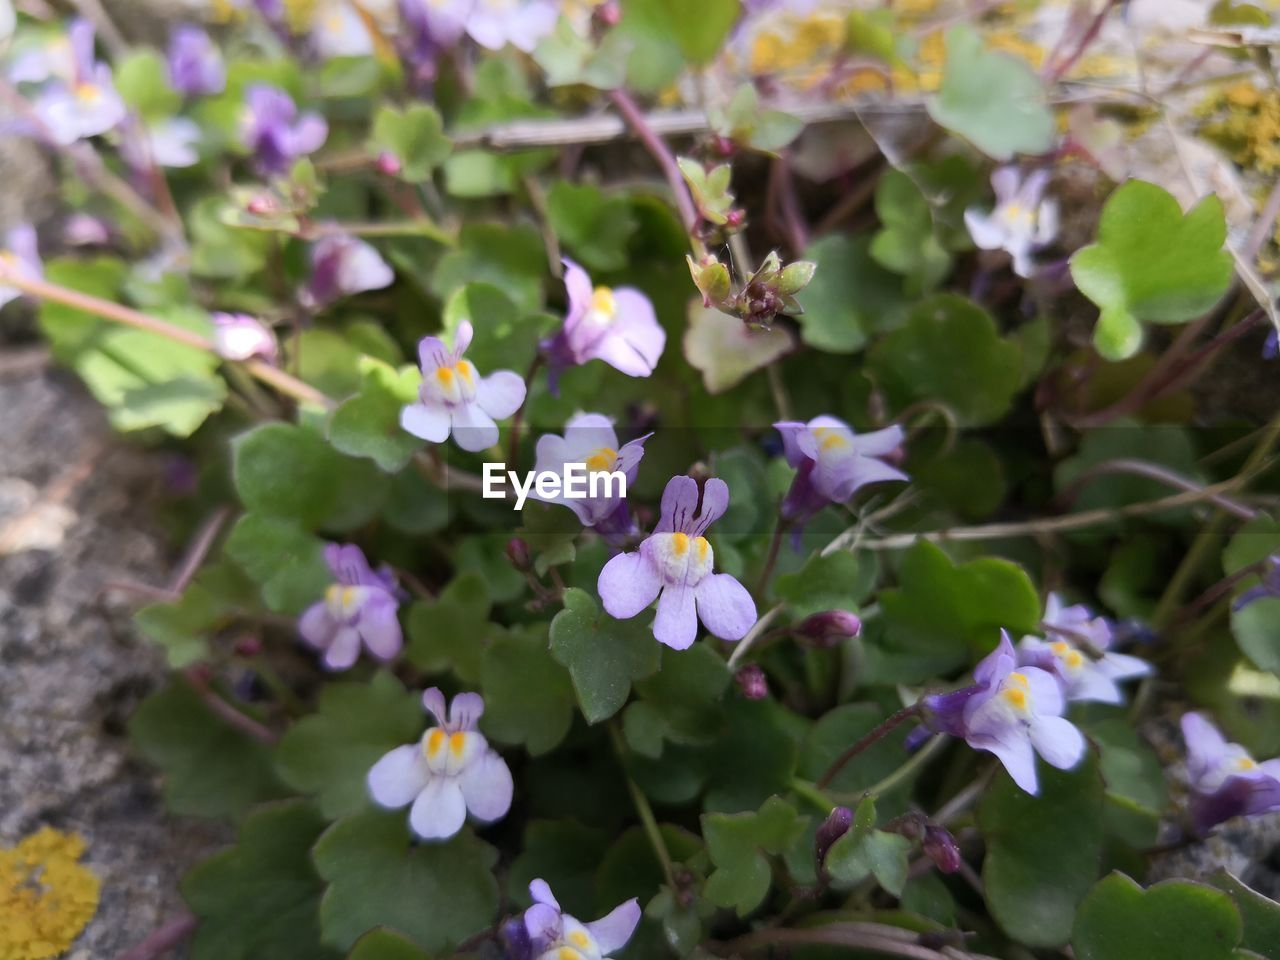 flowering plant, flower, plant, beauty in nature, fragility, freshness, growth, vulnerability, petal, day, close-up, flower head, plant part, no people, nature, inflorescence, leaf, outdoors, high angle view, selective focus, purple